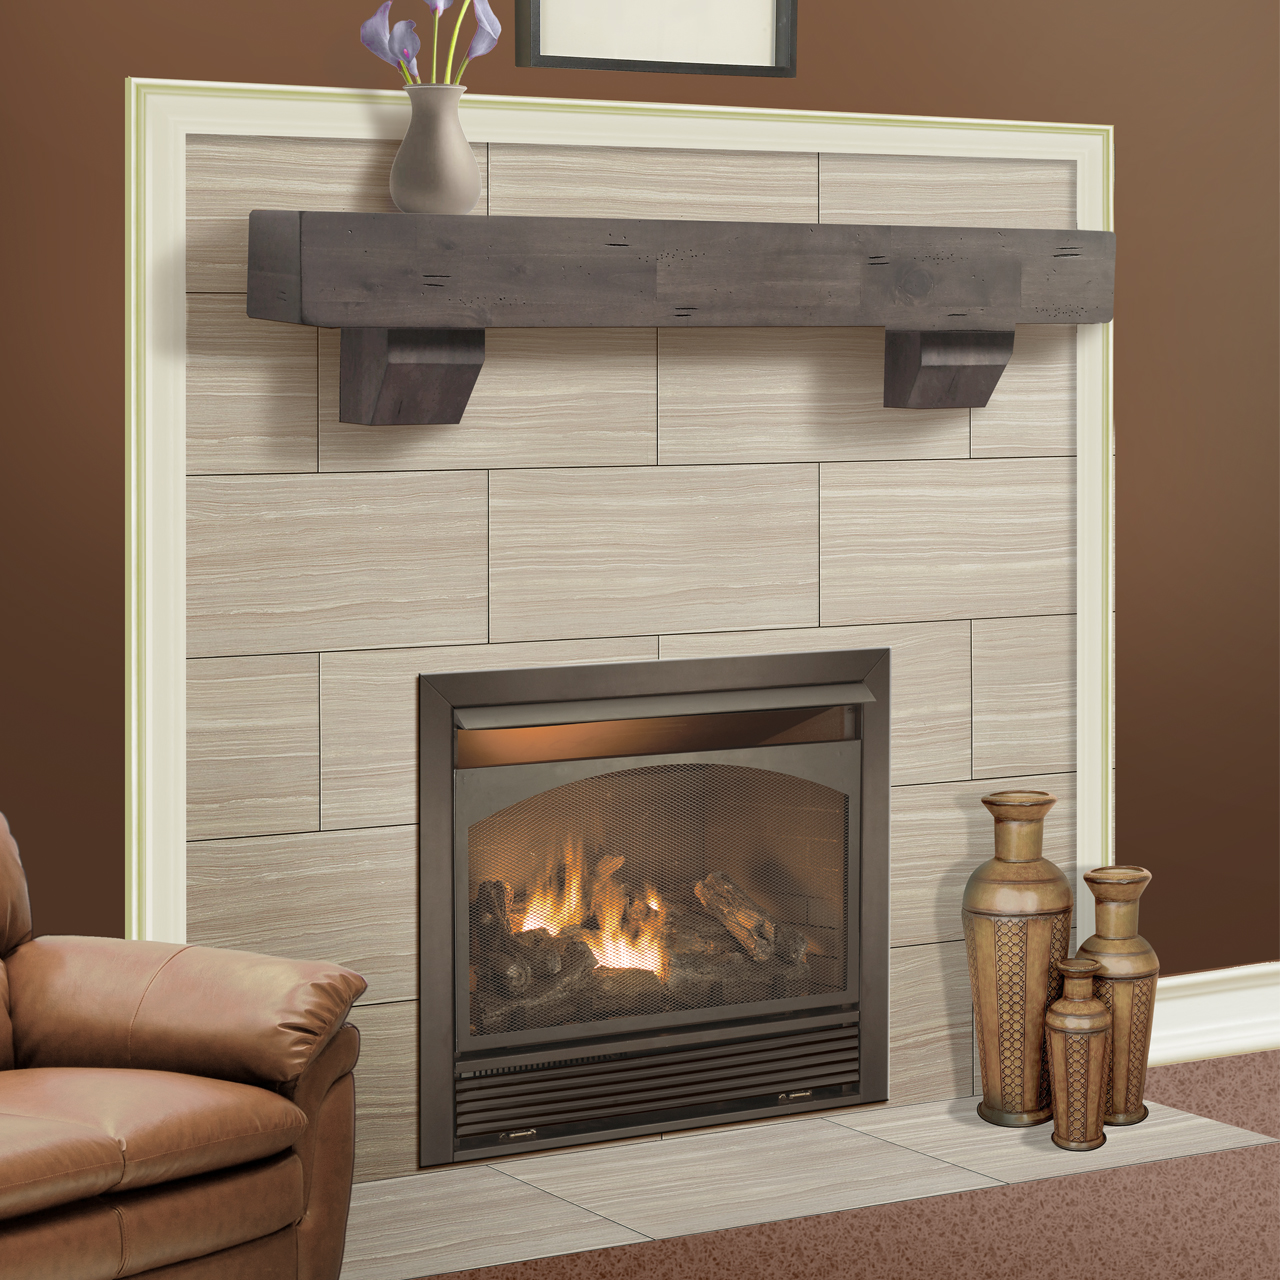 zero clearance fireplace amazing direct vent zero clearance gas